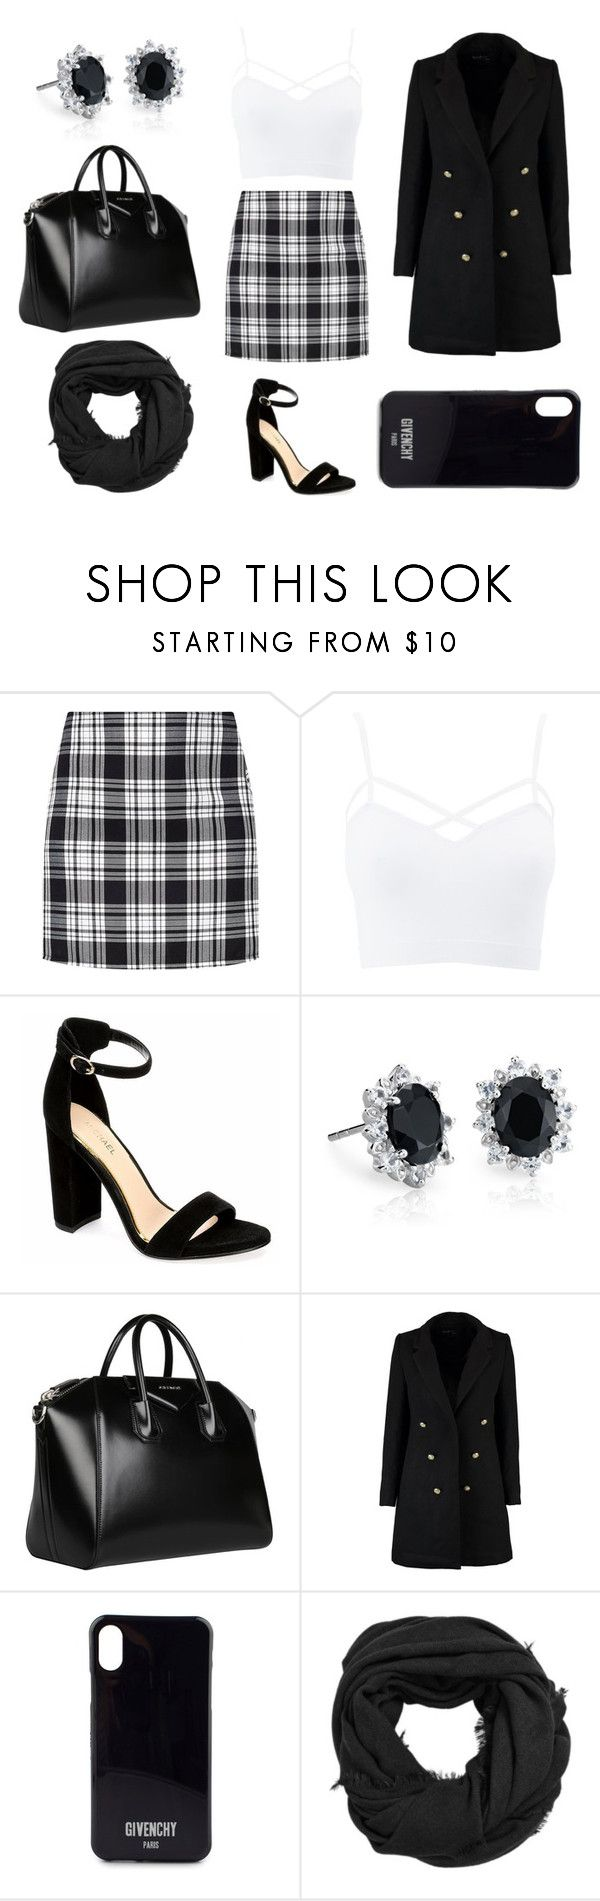 """""""Black Friday night girls night out"""" by liavictoria-ugarte ❤ liked on Polyvore featuring Charlotte Russe, Blue Nile, Givenchy, Boohoo, MANGO, blackandwhite, girlsnightout and plus size clothing"""